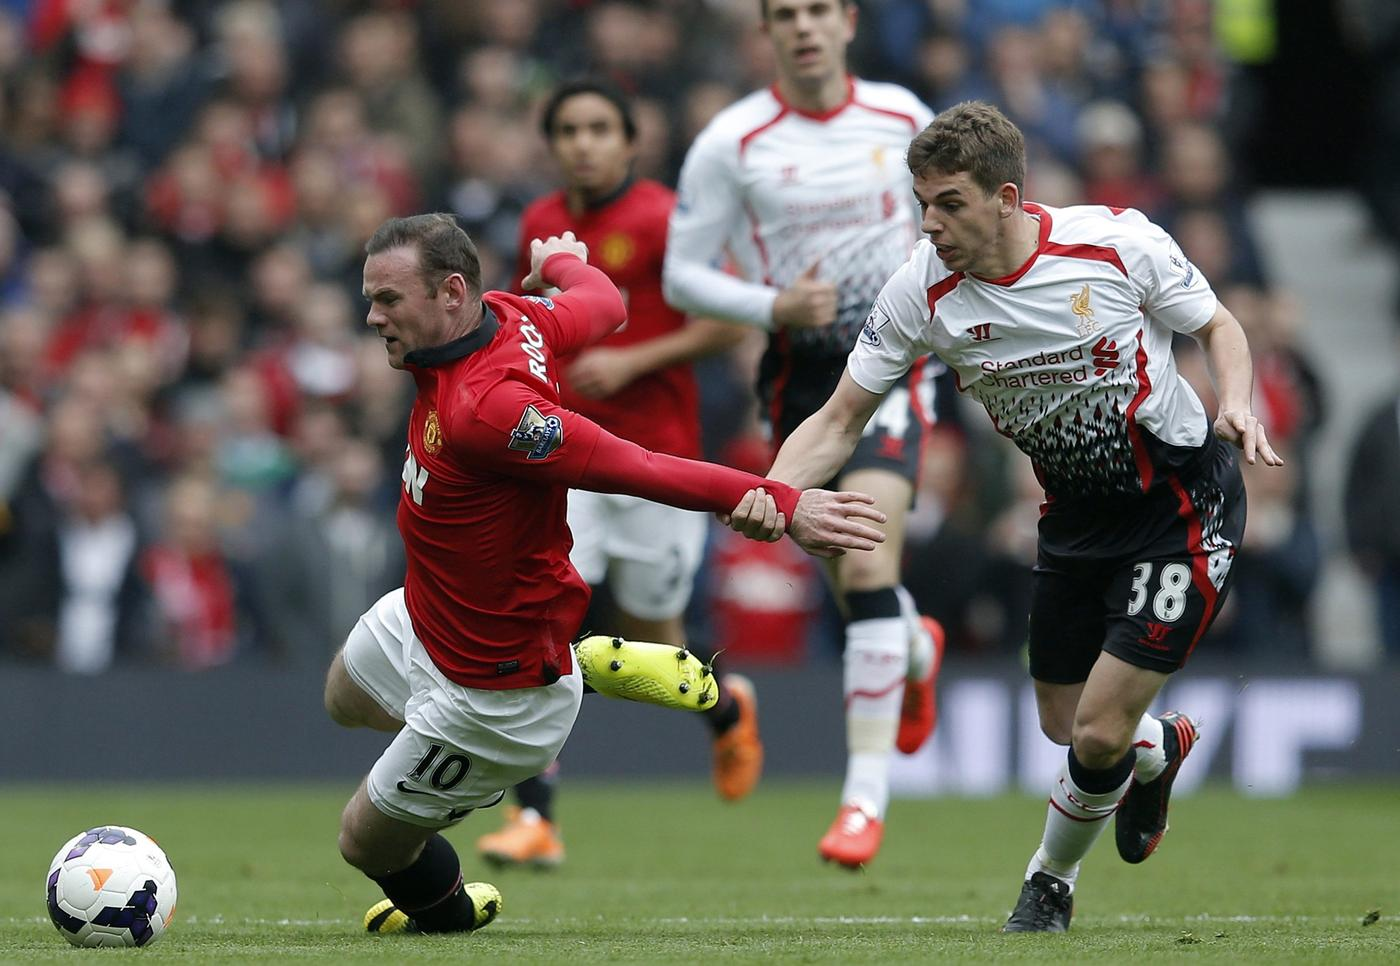 Manchester United's Sunday clash with Liverpool shows how quickly the tables can turn in the Premier League